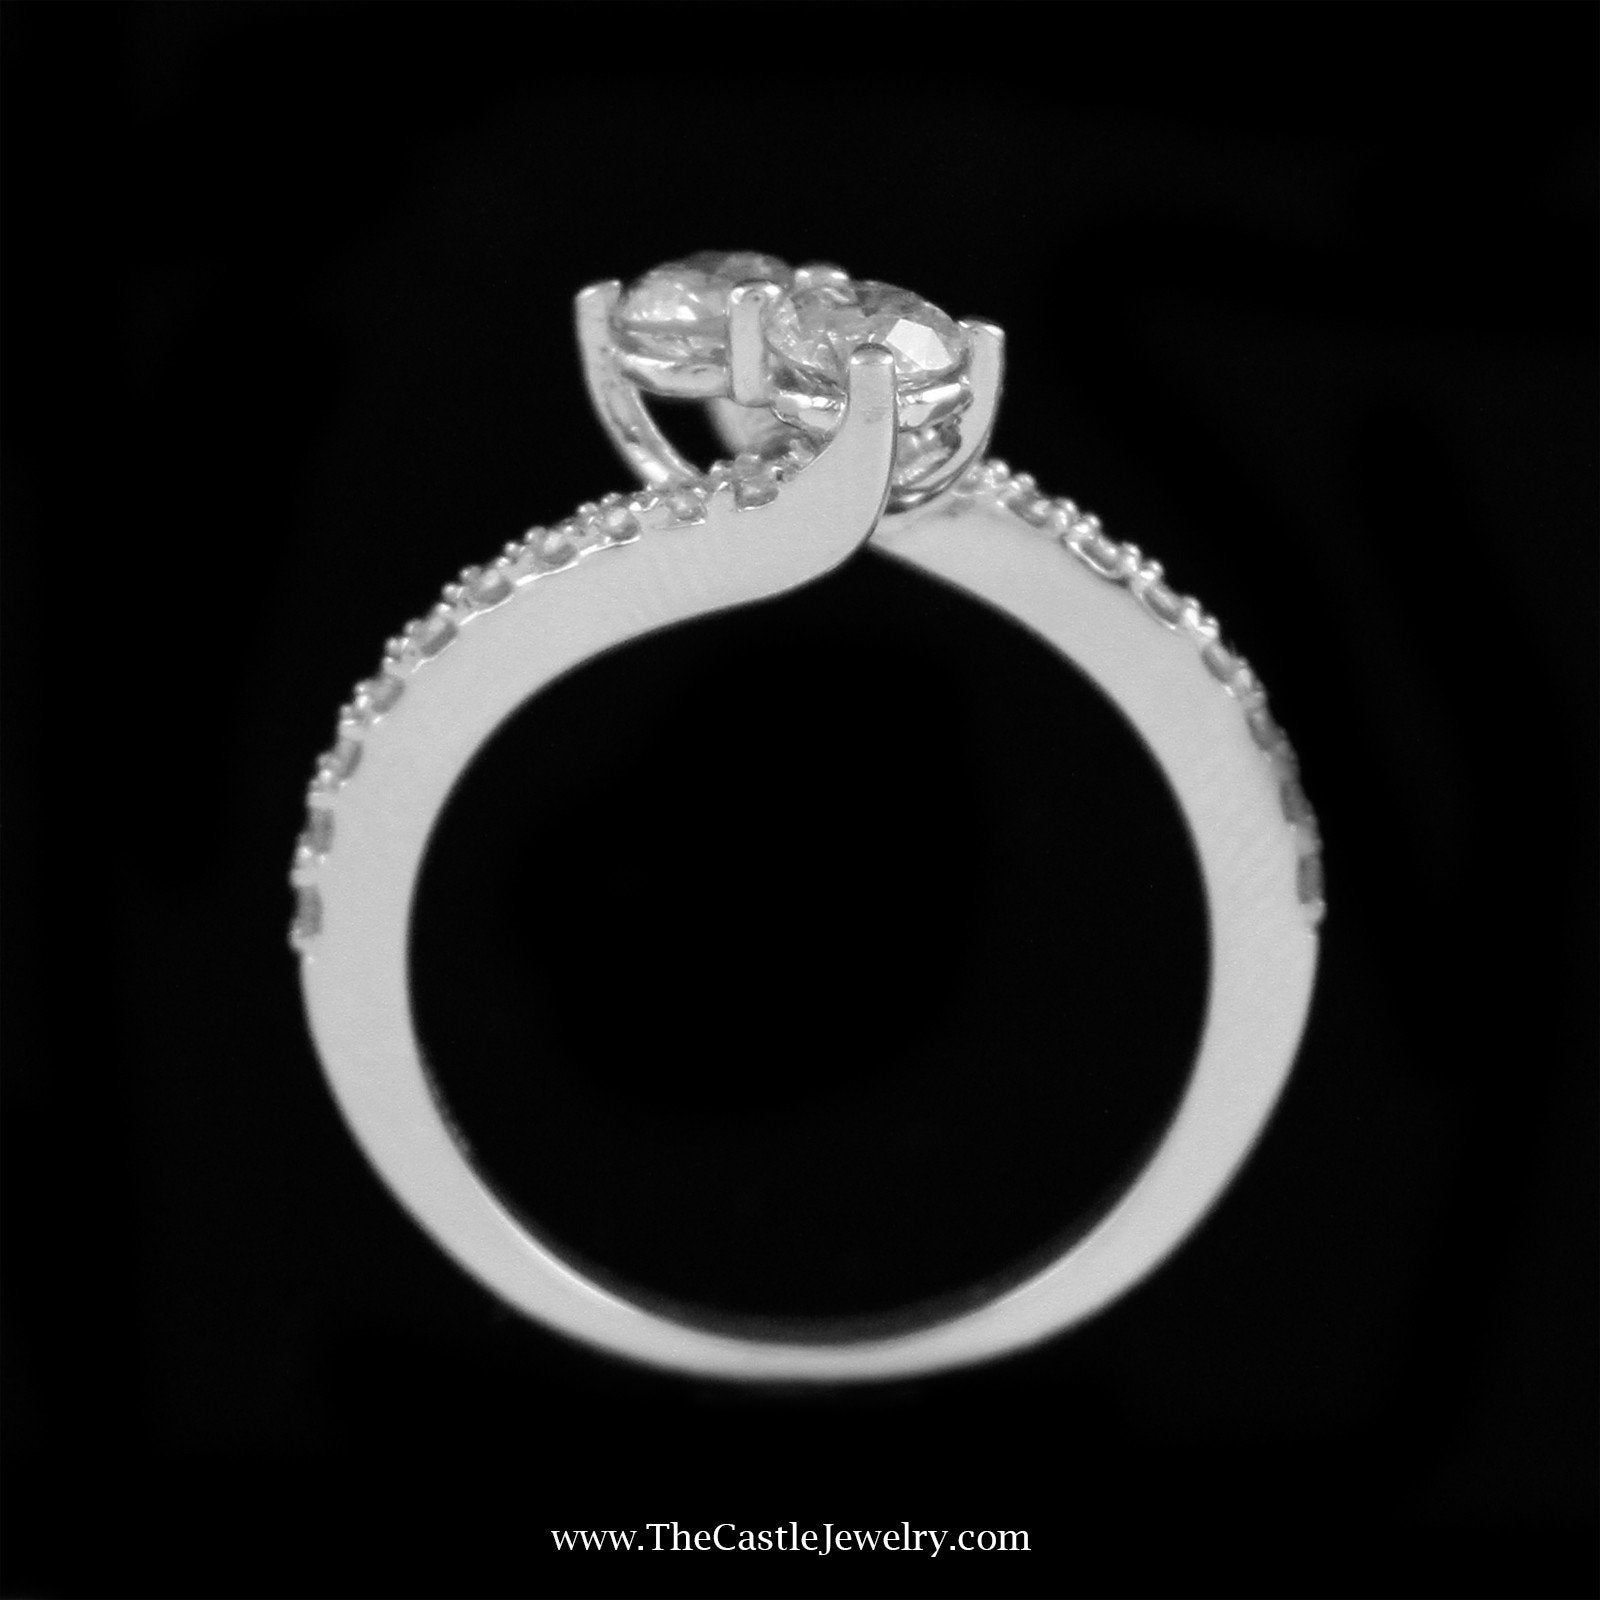 Beautiful 1cttw My True Love & My Best Friend Diamond Ring Crafted in 14K White Gold-1